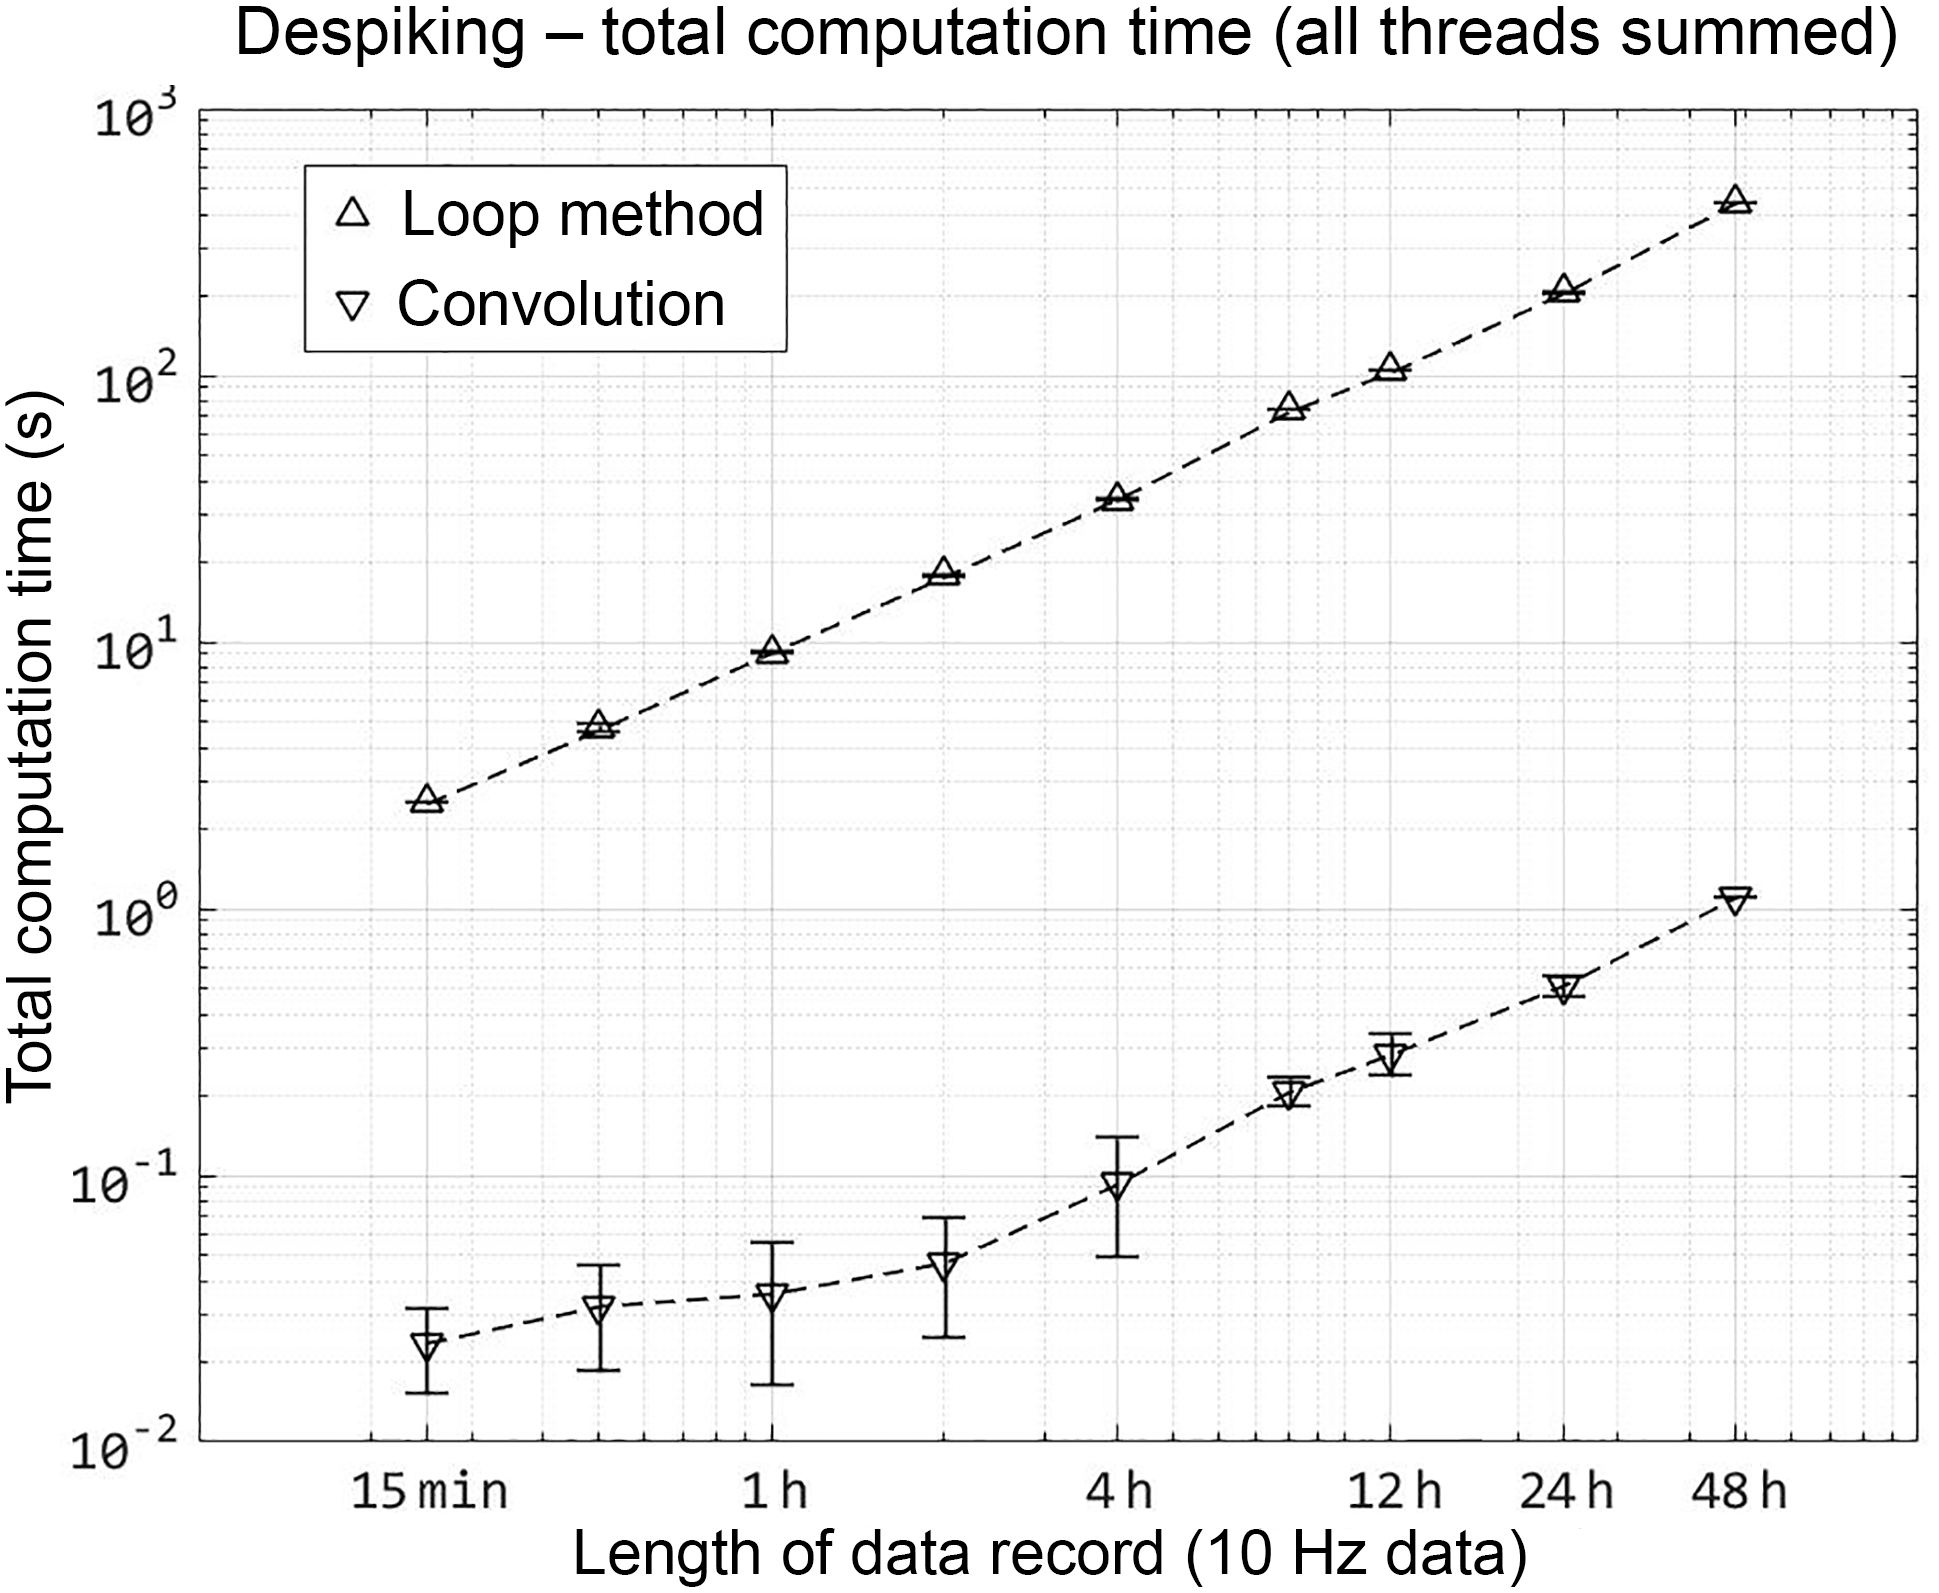 AMT - Computational efficiency for the surface renewal method